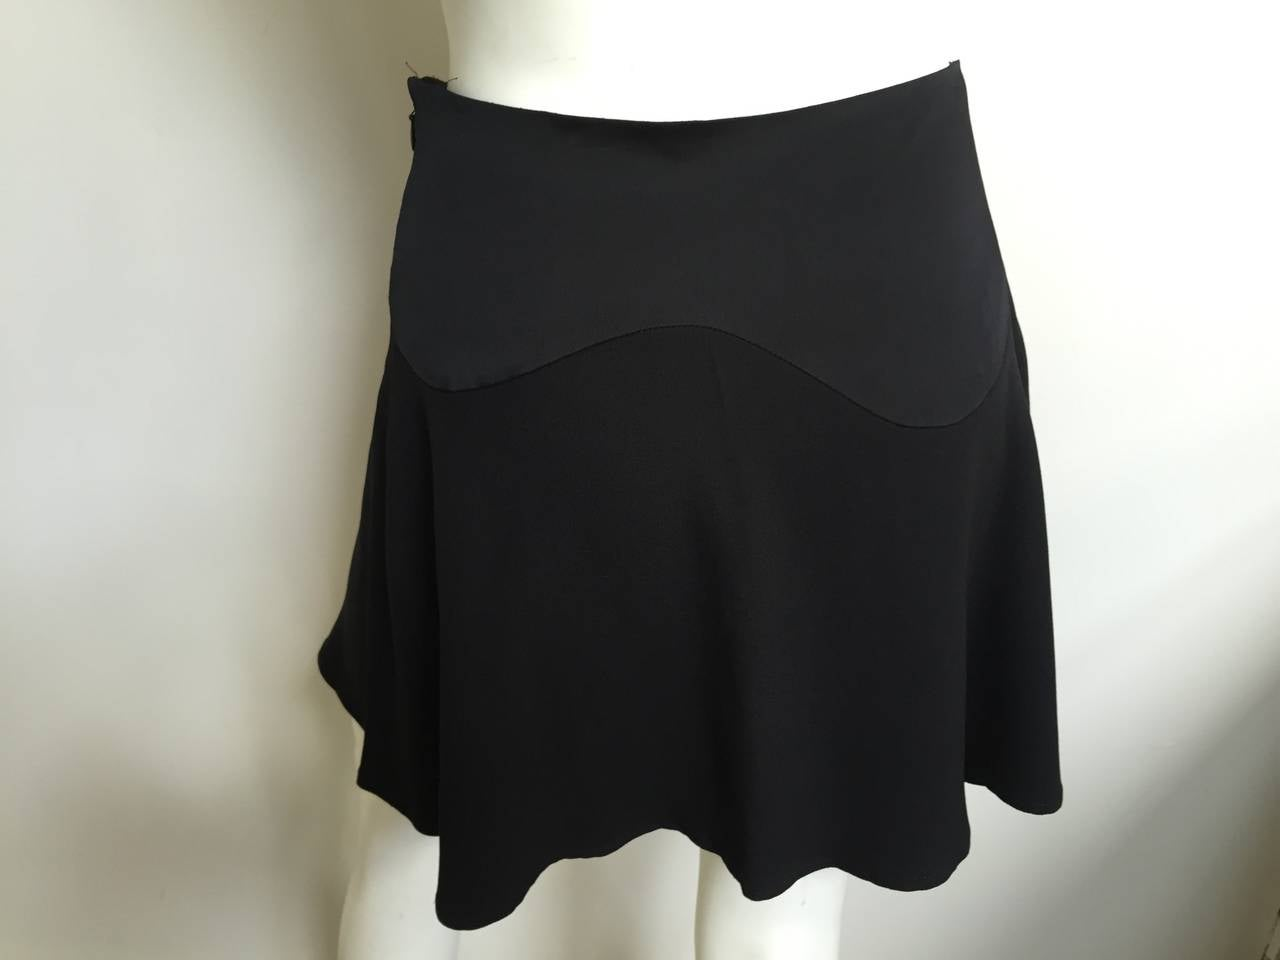 Moschino Cheap and Chic black short sexy skirt size 6. 6